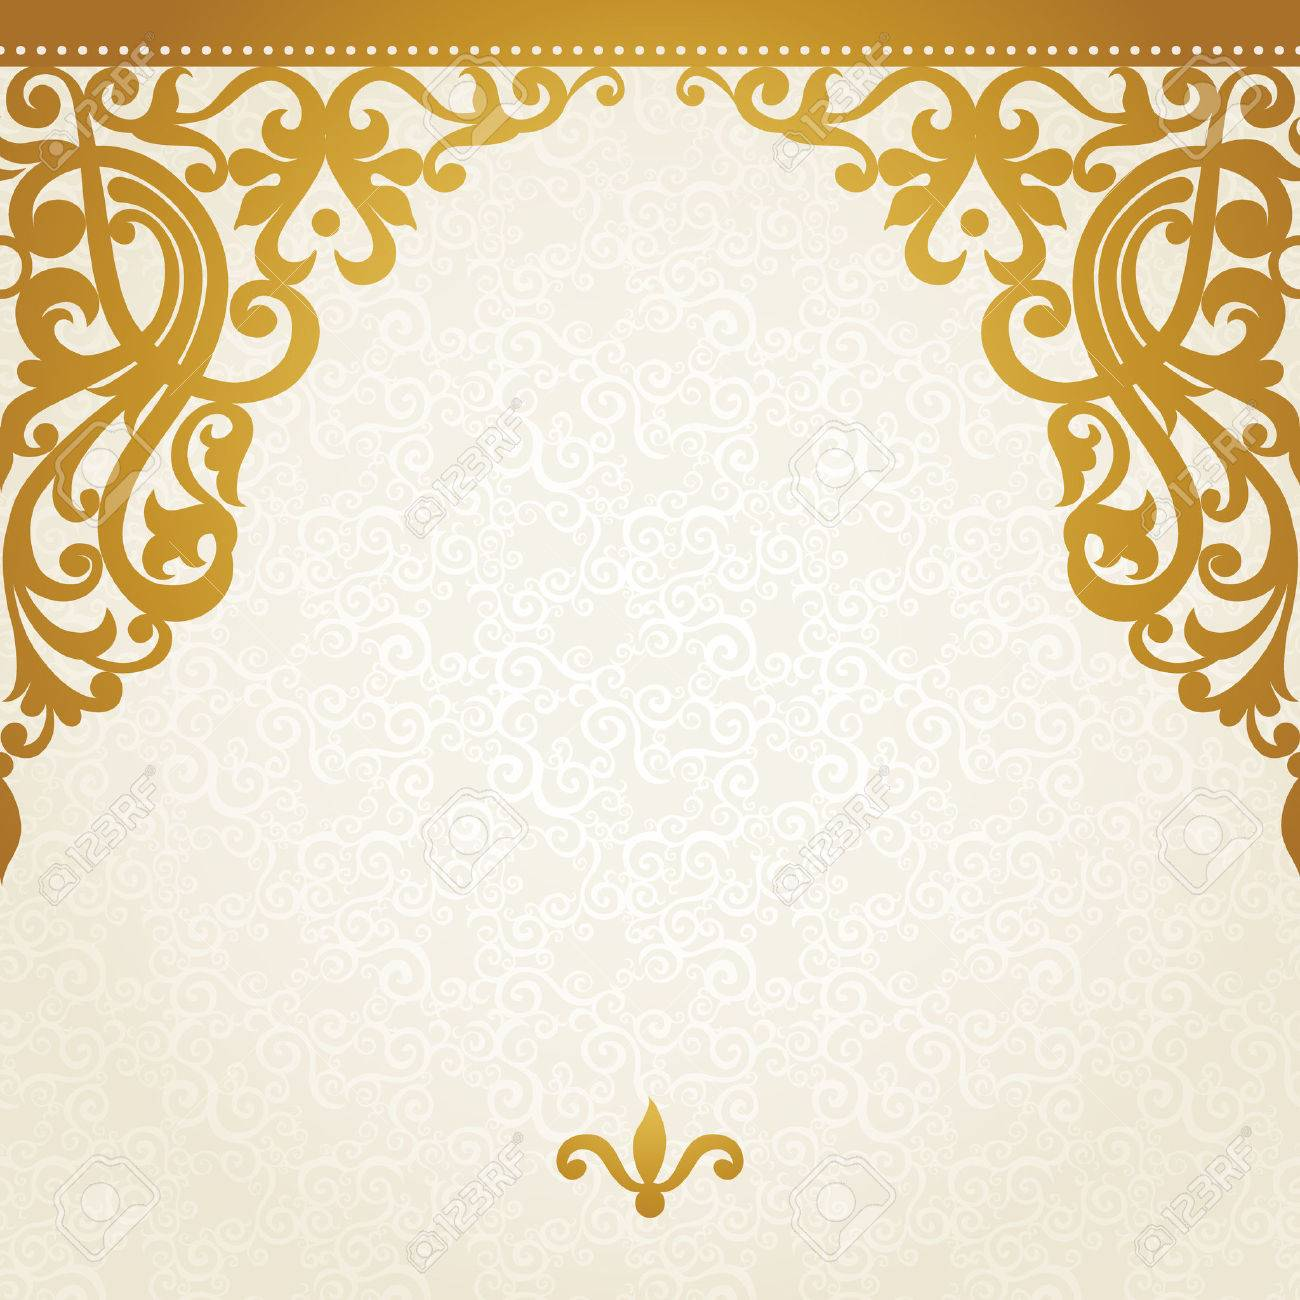 Vector seamless border in Victorian style. Element for design. Place for your text. It can be used for decorating of wedding invitations, greeting cards, decoration for bags and clothes. - 34319649